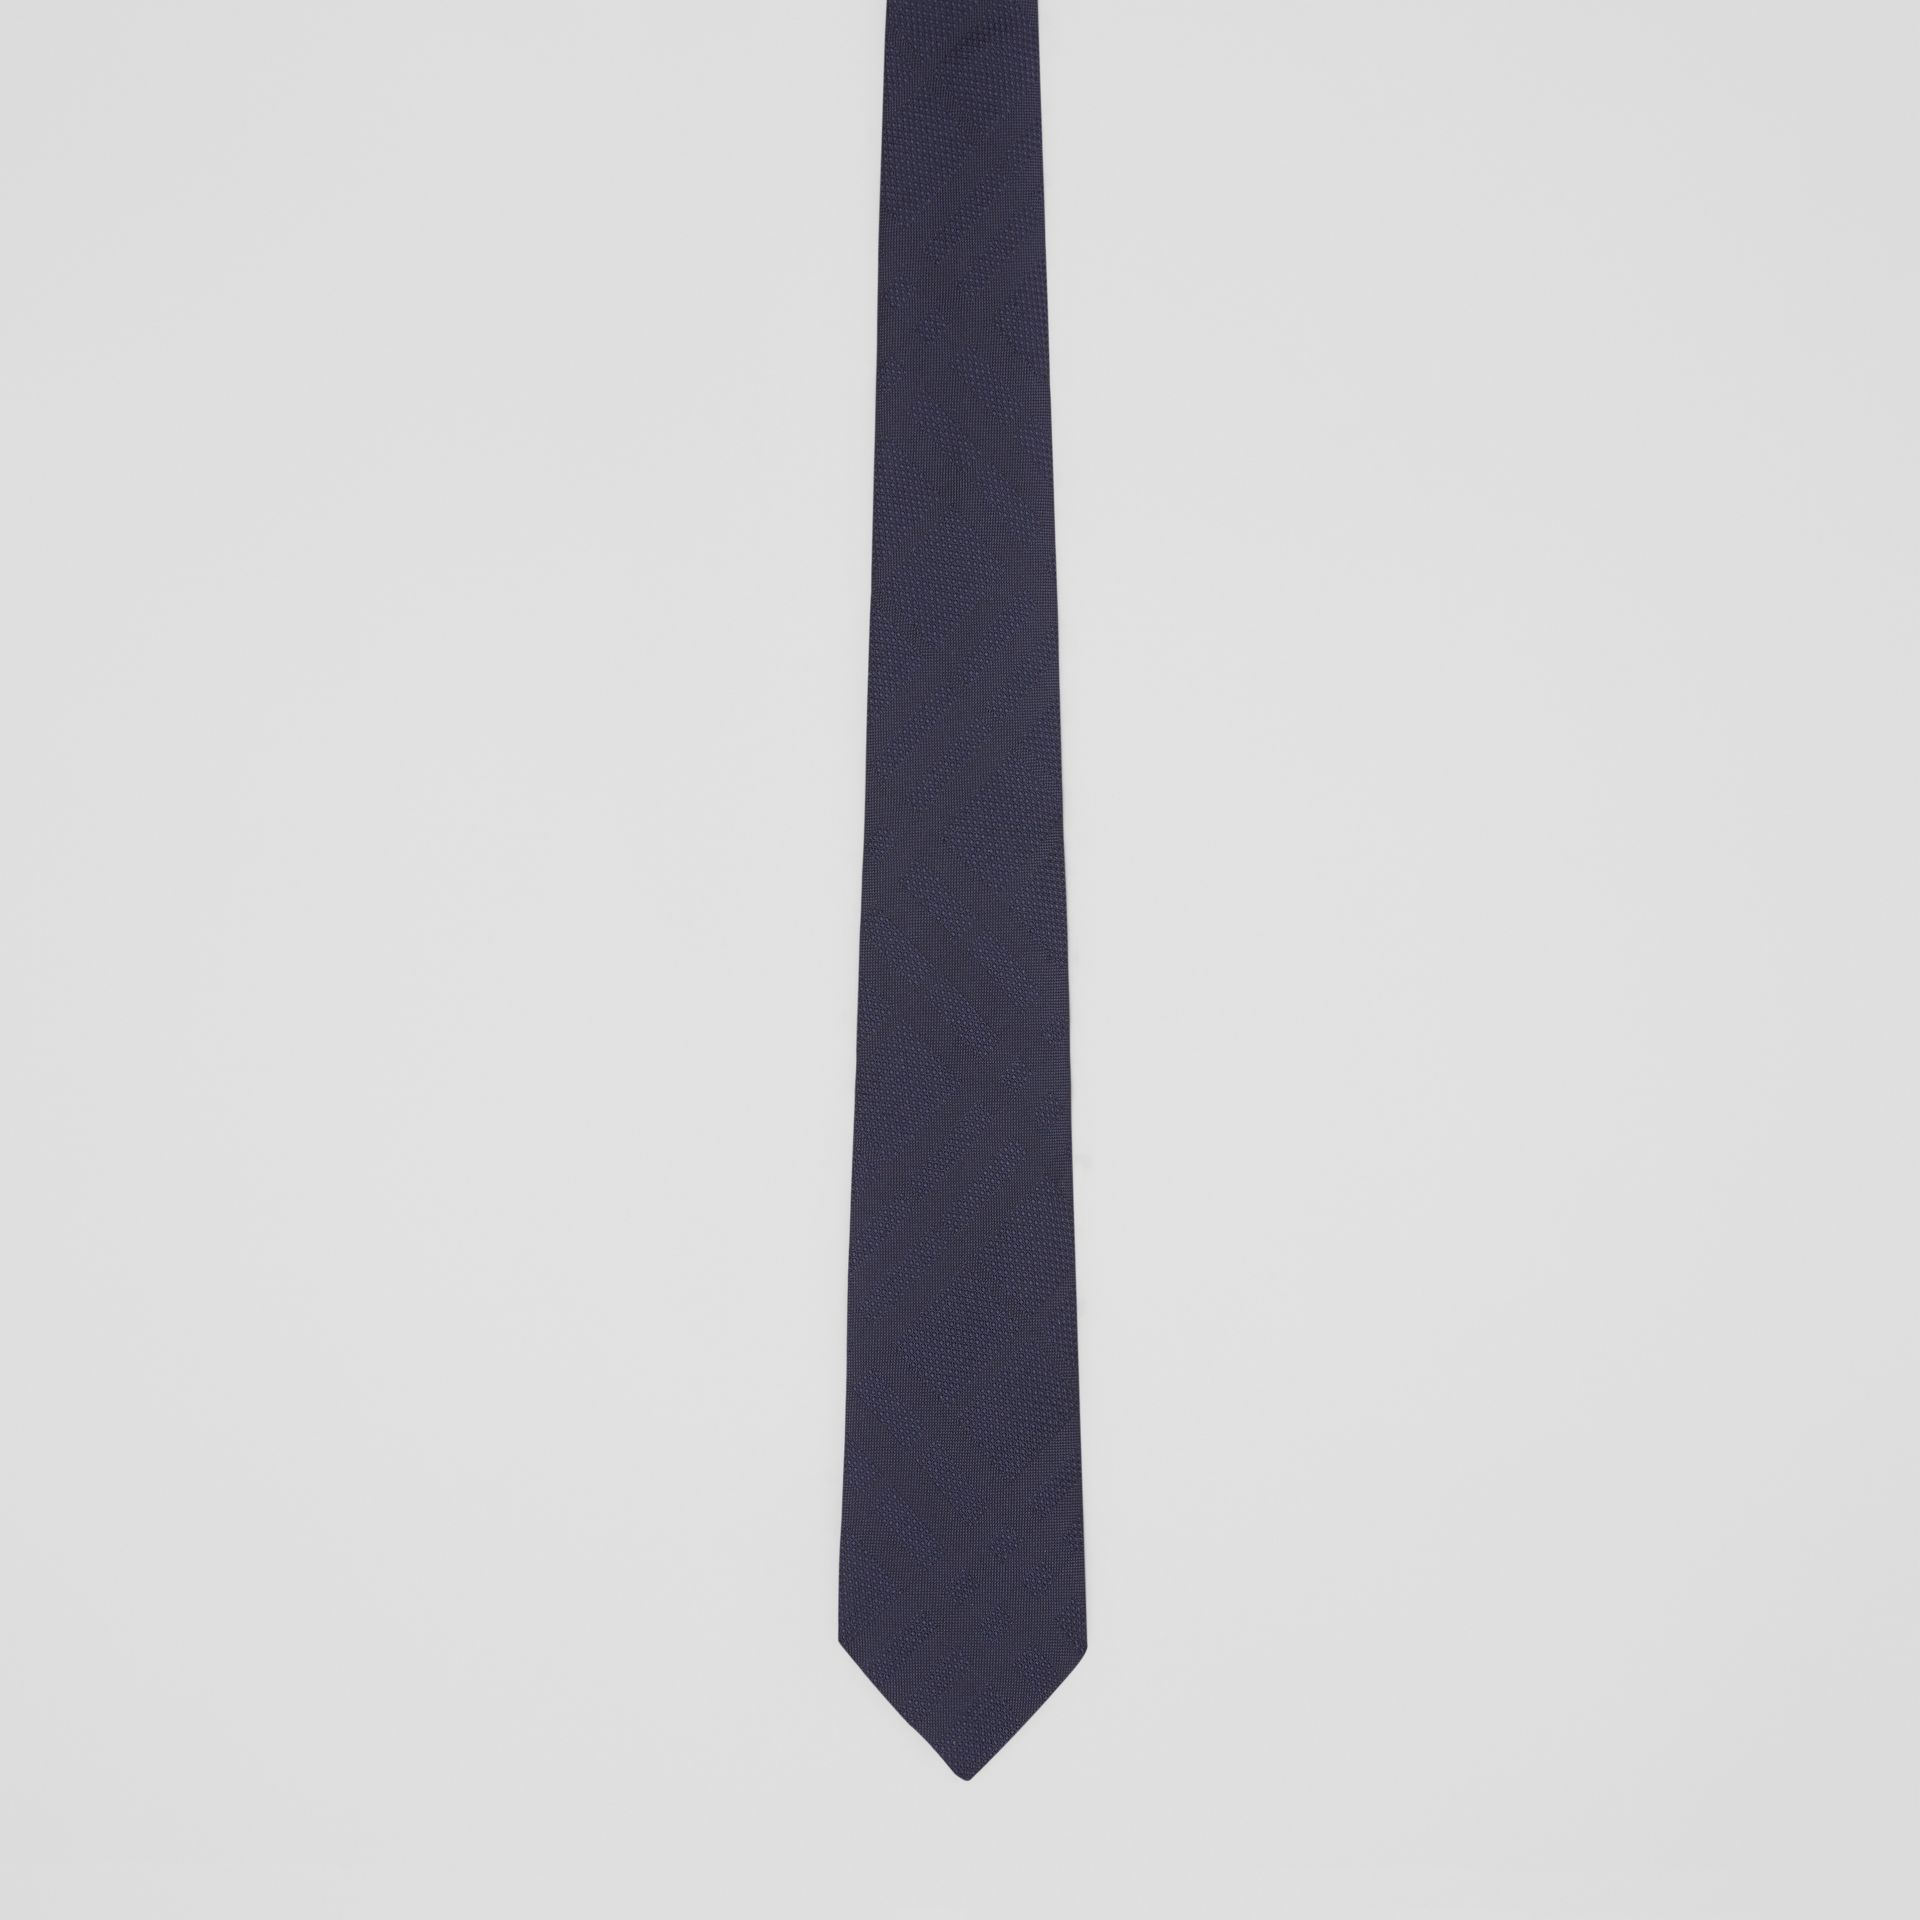 Classic Cut Check Silk Jacquard Tie in Navy - Men | Burberry - gallery image 3